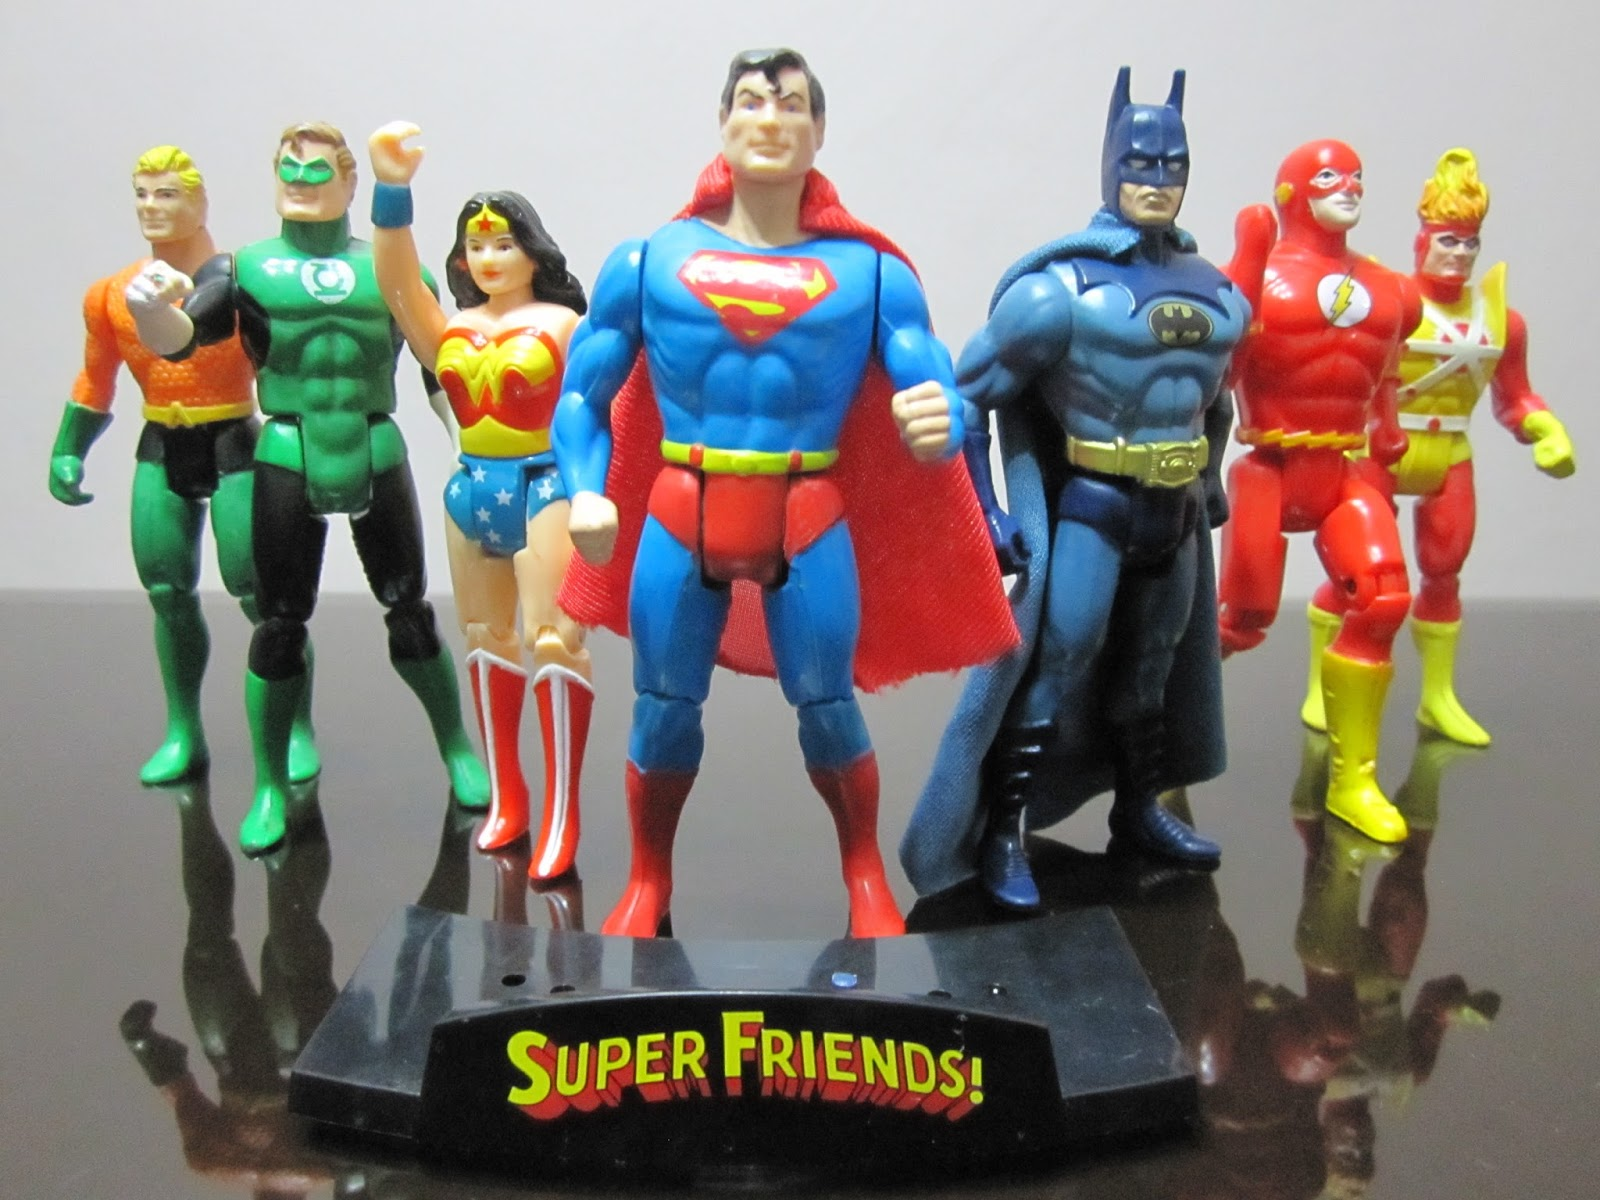 Calex Lampen Action : A retrospective of the justice league in toy form action figure